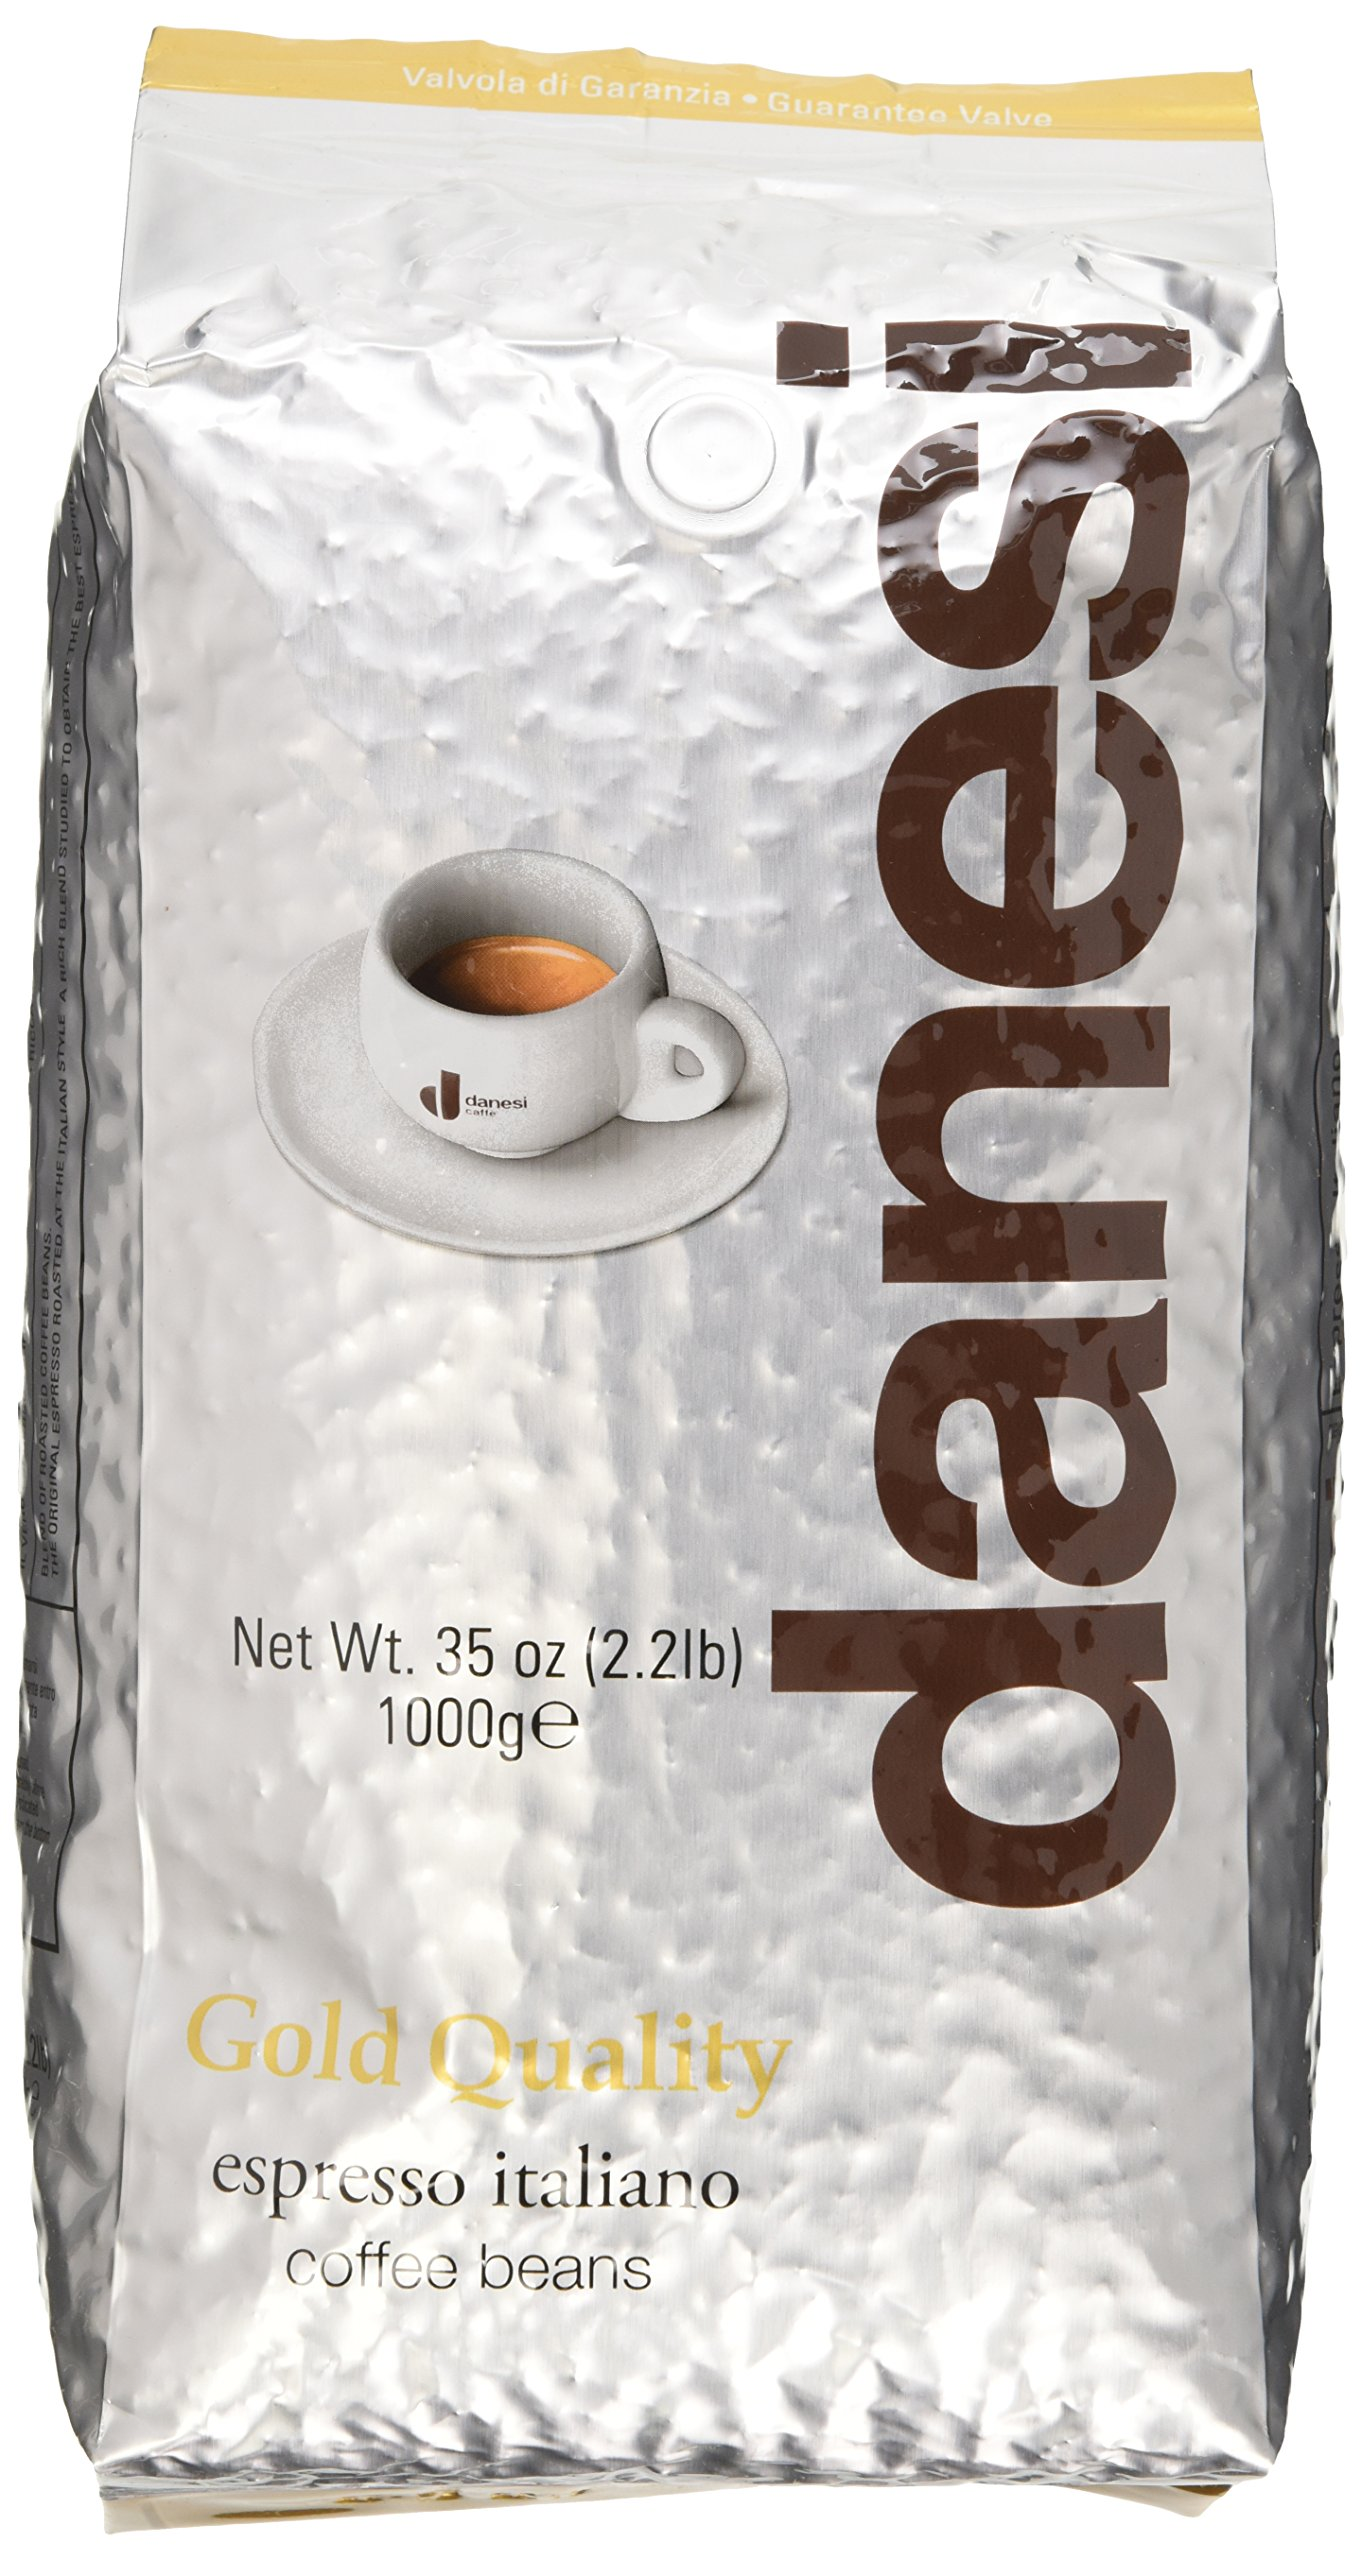 Danesi Gold Quality Beans 2.2 lbs bag Espresso Coffee Beans from Italy (2 x 2.2 lbs)